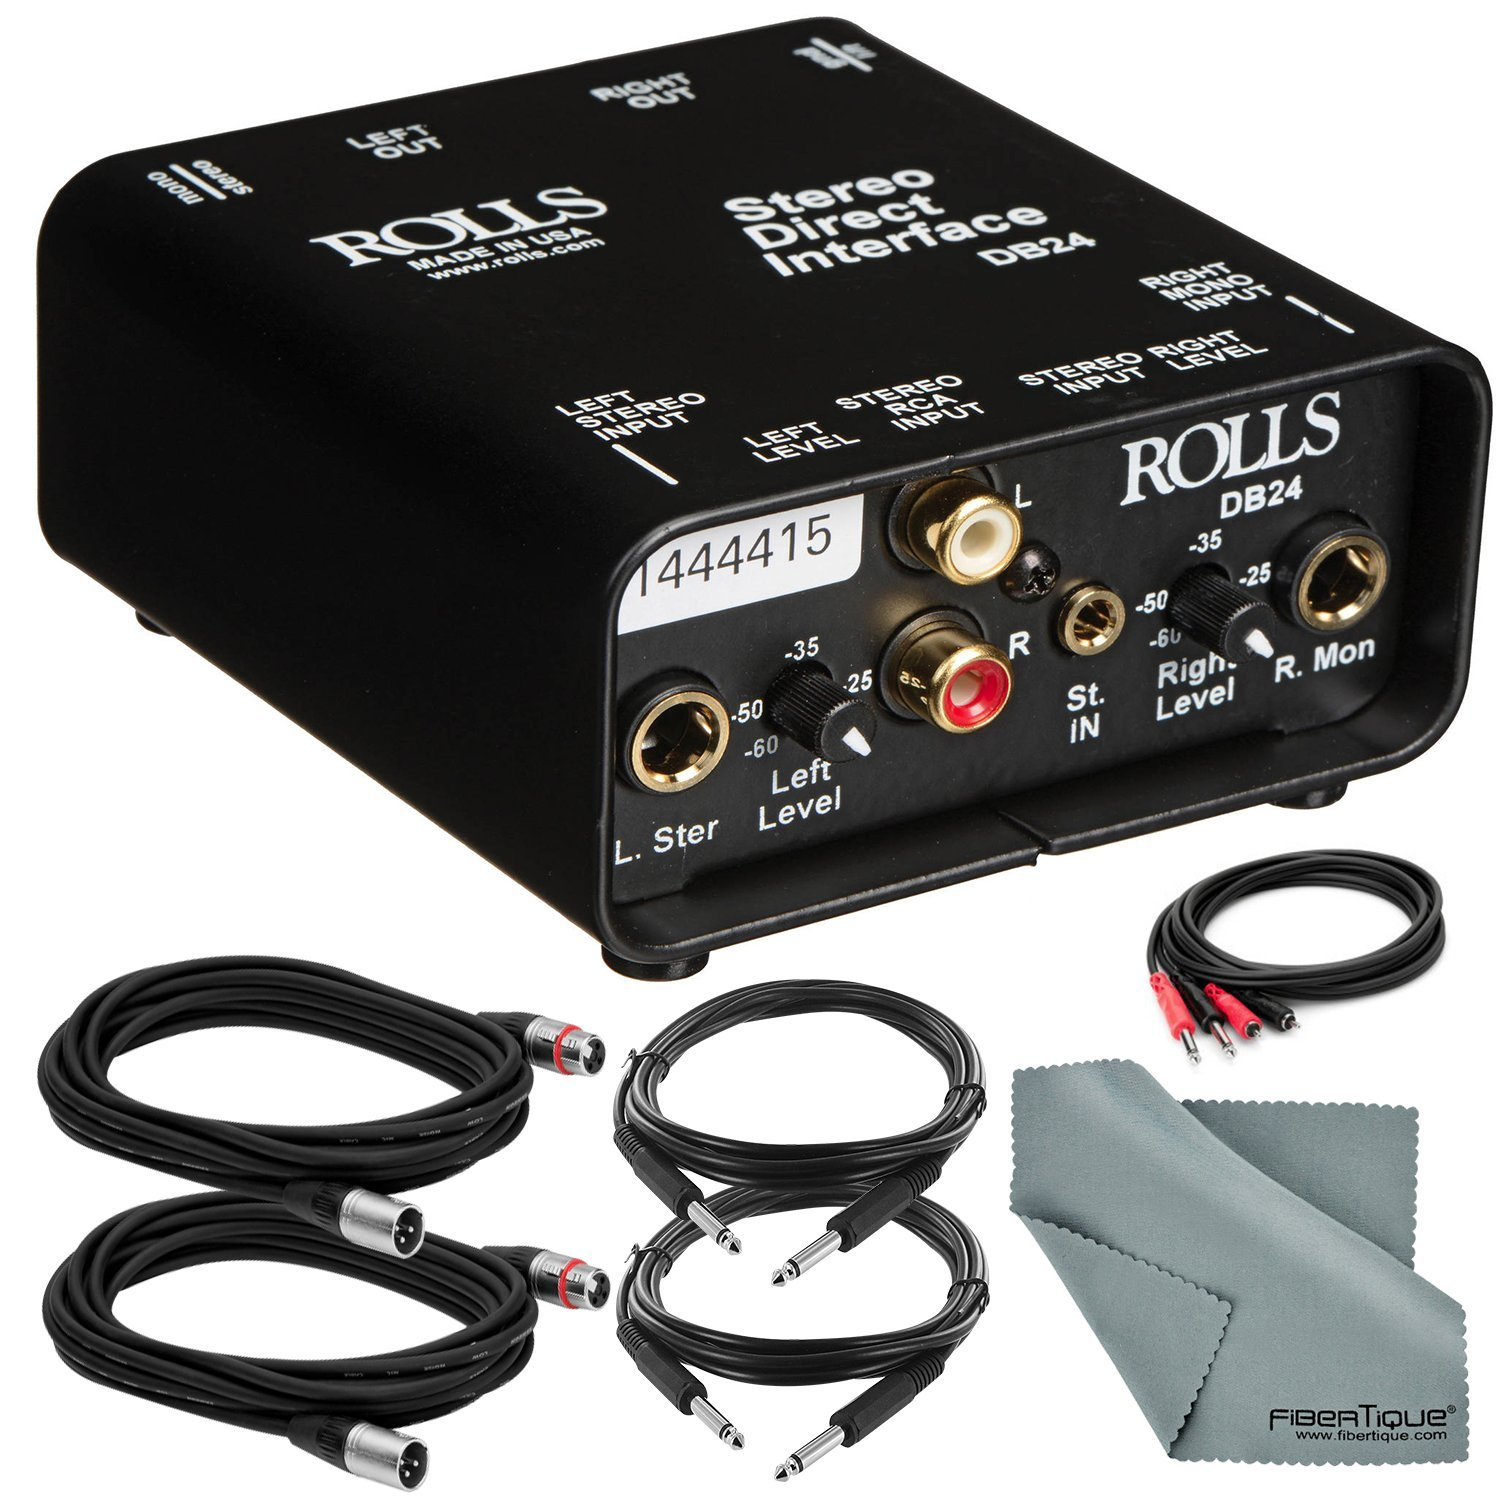 Rolls DB24 Stereo Direct Interface and Accessory Bundle w/ Xpix XLR & 1/4'' TRS Cables + Fibertique Cloth + 2RCA Male Cable by Photo Savings